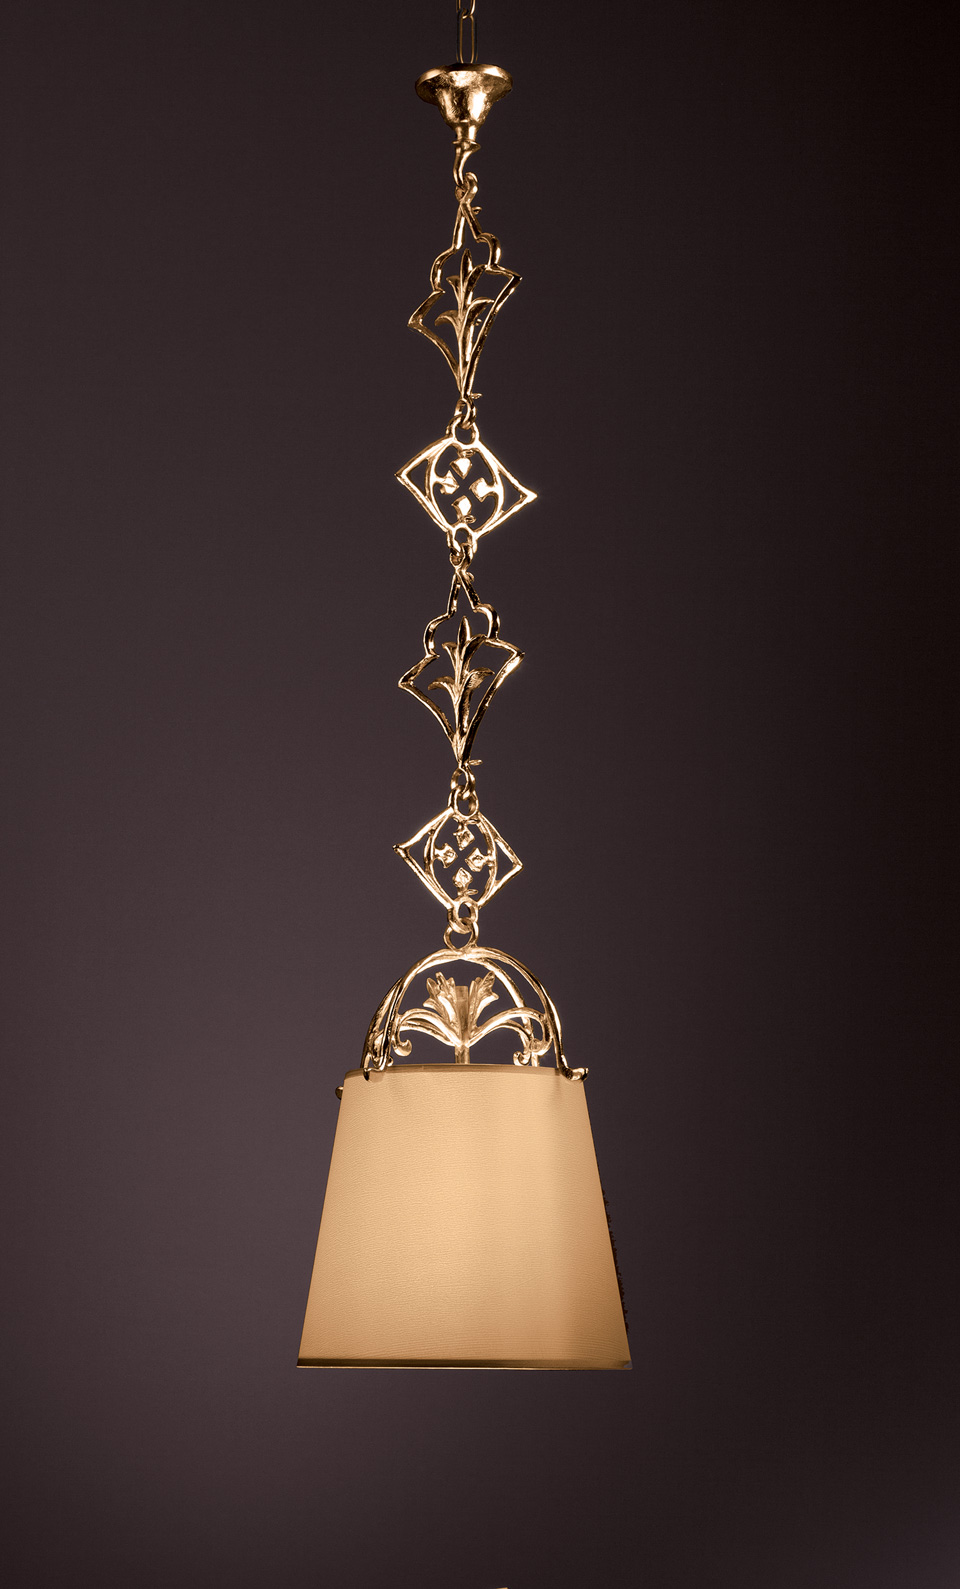 Pendant with gilded scrolls Verone. Objet insolite.